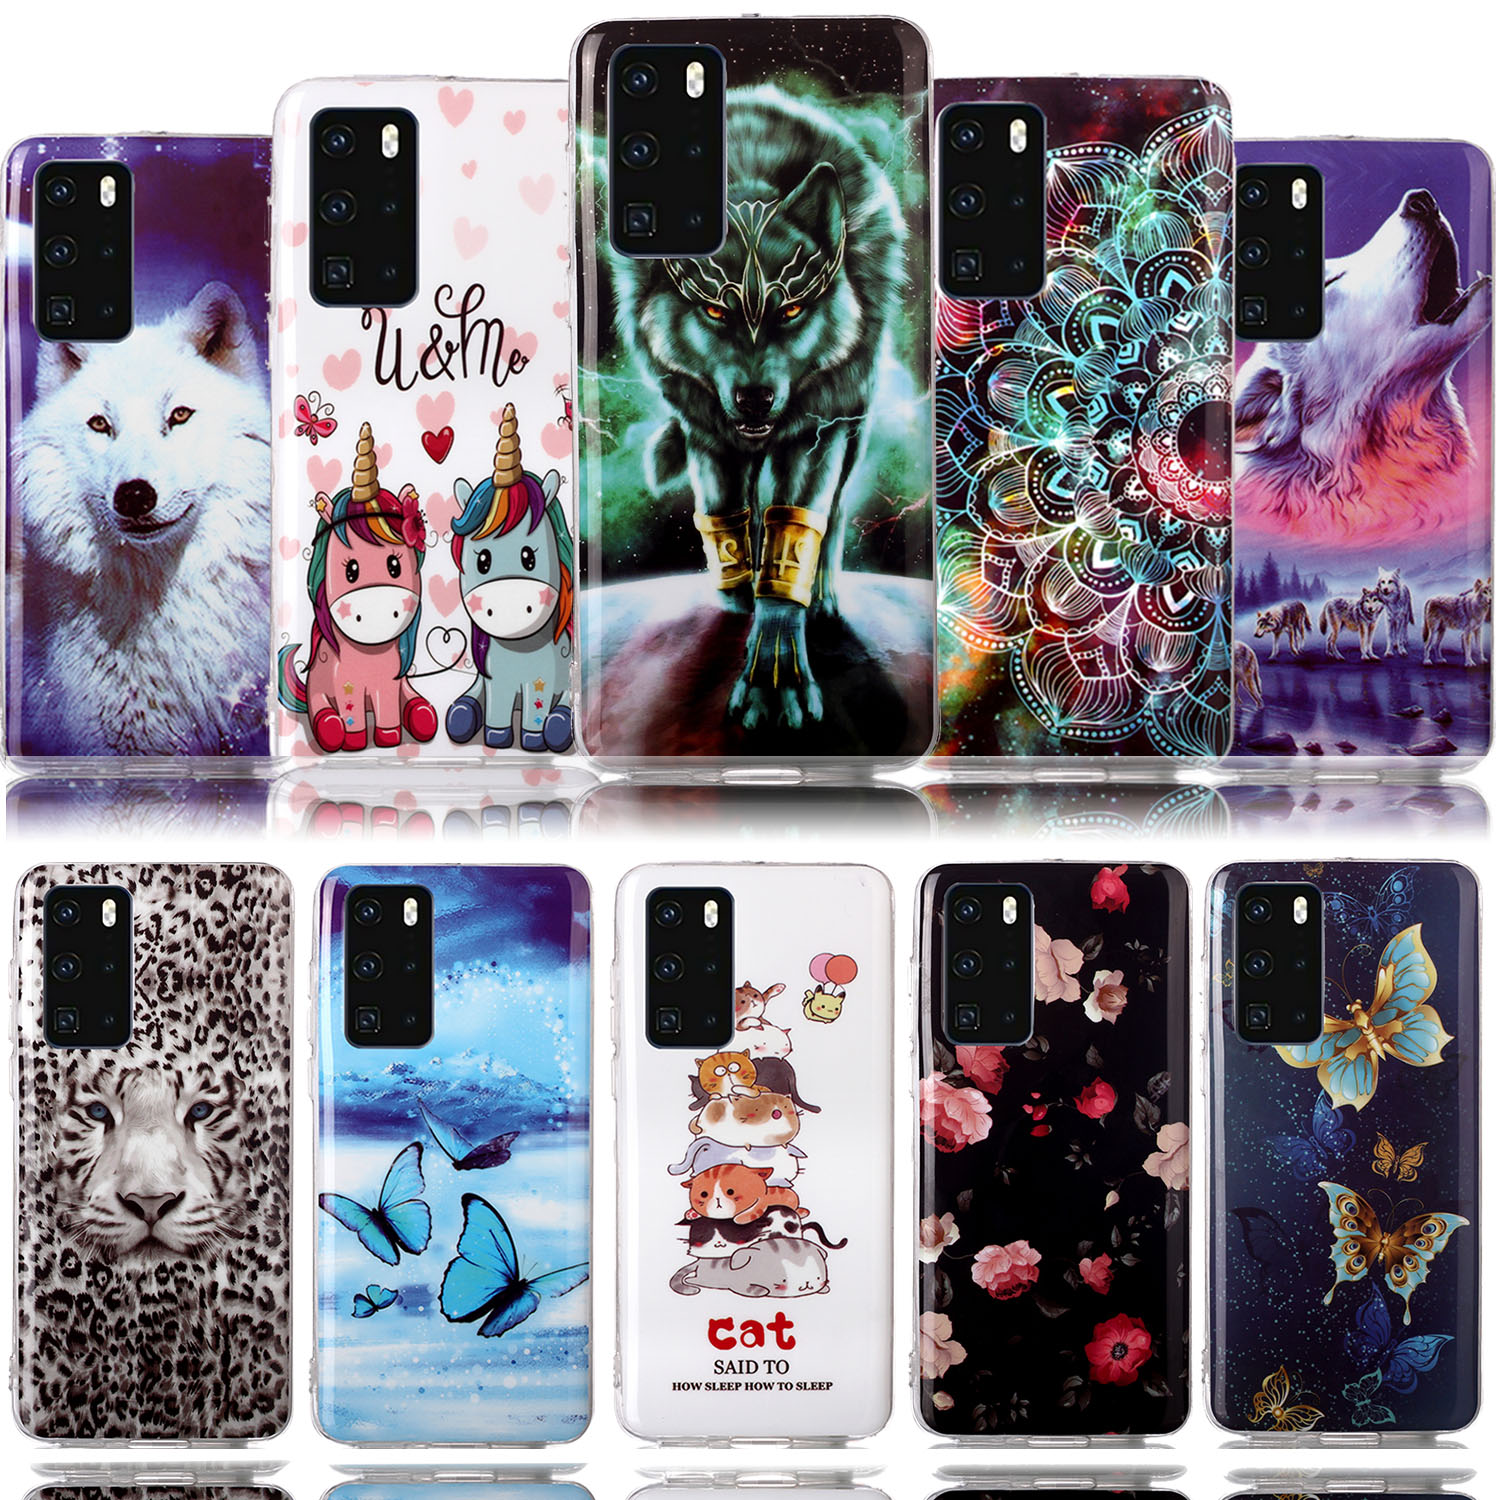 Rose Smartphone Cases For Huawei P40 Lite Soft Cover Huawei P30 Pro Lite P40 Nova 4E P20 Honor 8S 3E 8A Y6 <font><b>2019</b></font> Y5 <font><b>Y7</b></font> P Smart 10 image